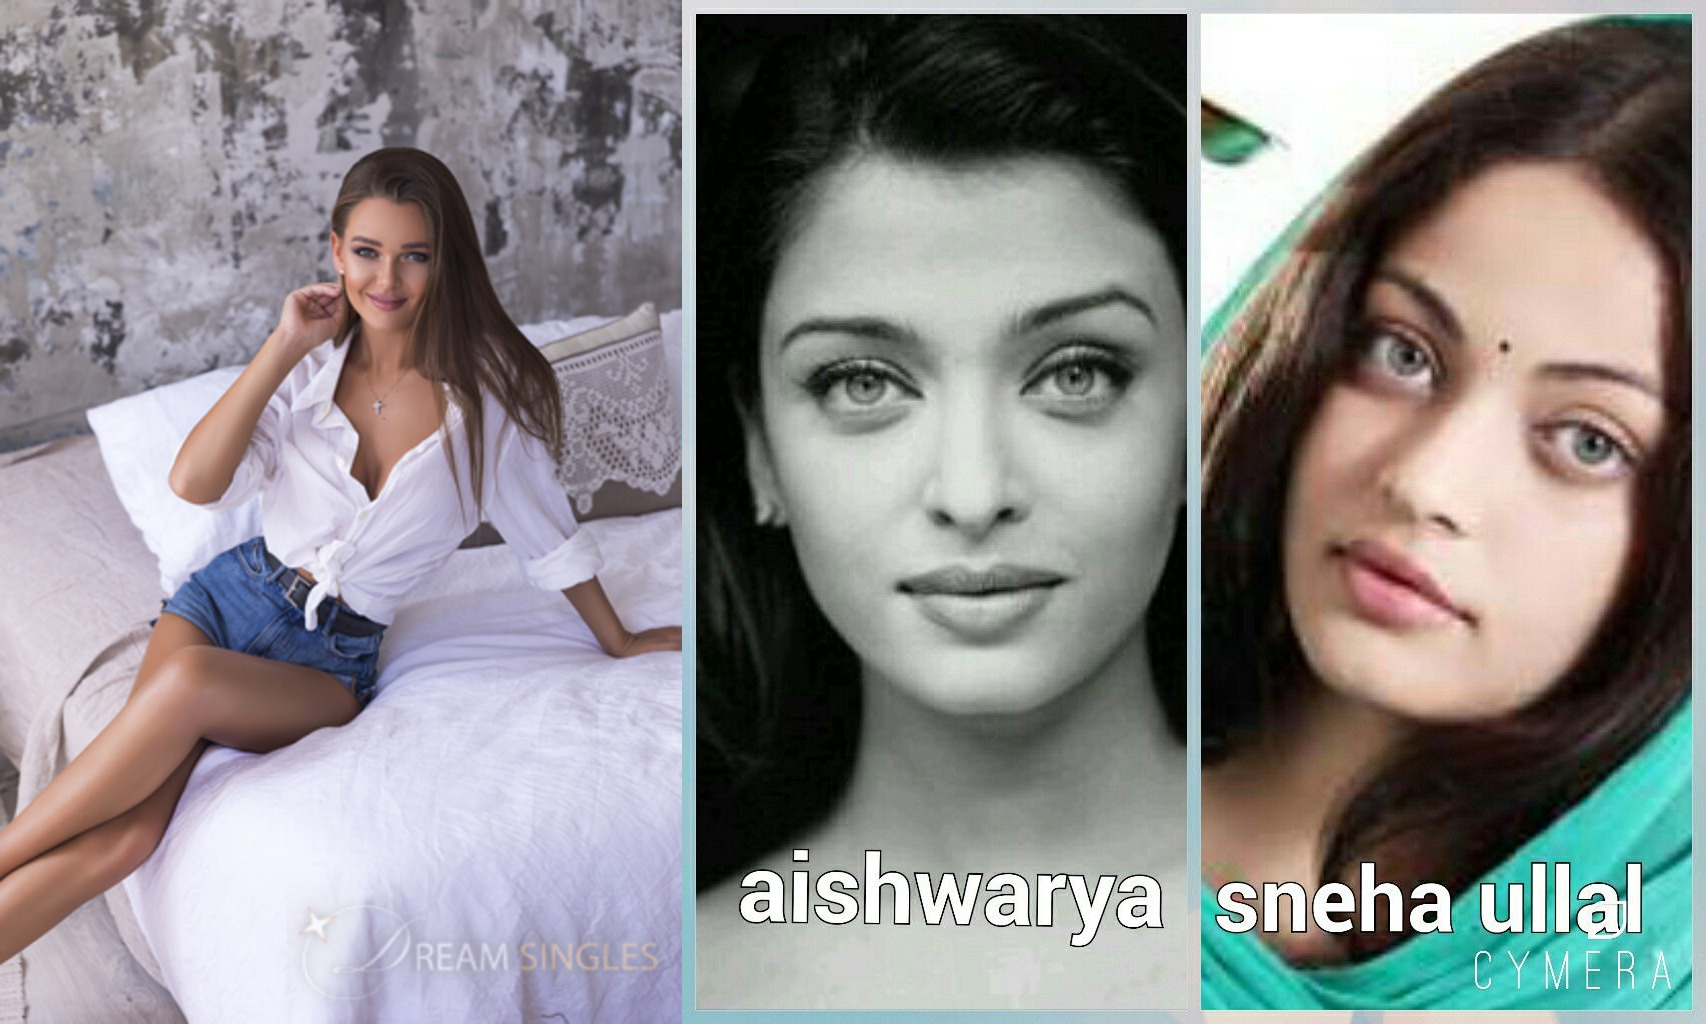 AISHWARYA RAI AND CHRISTINA AND